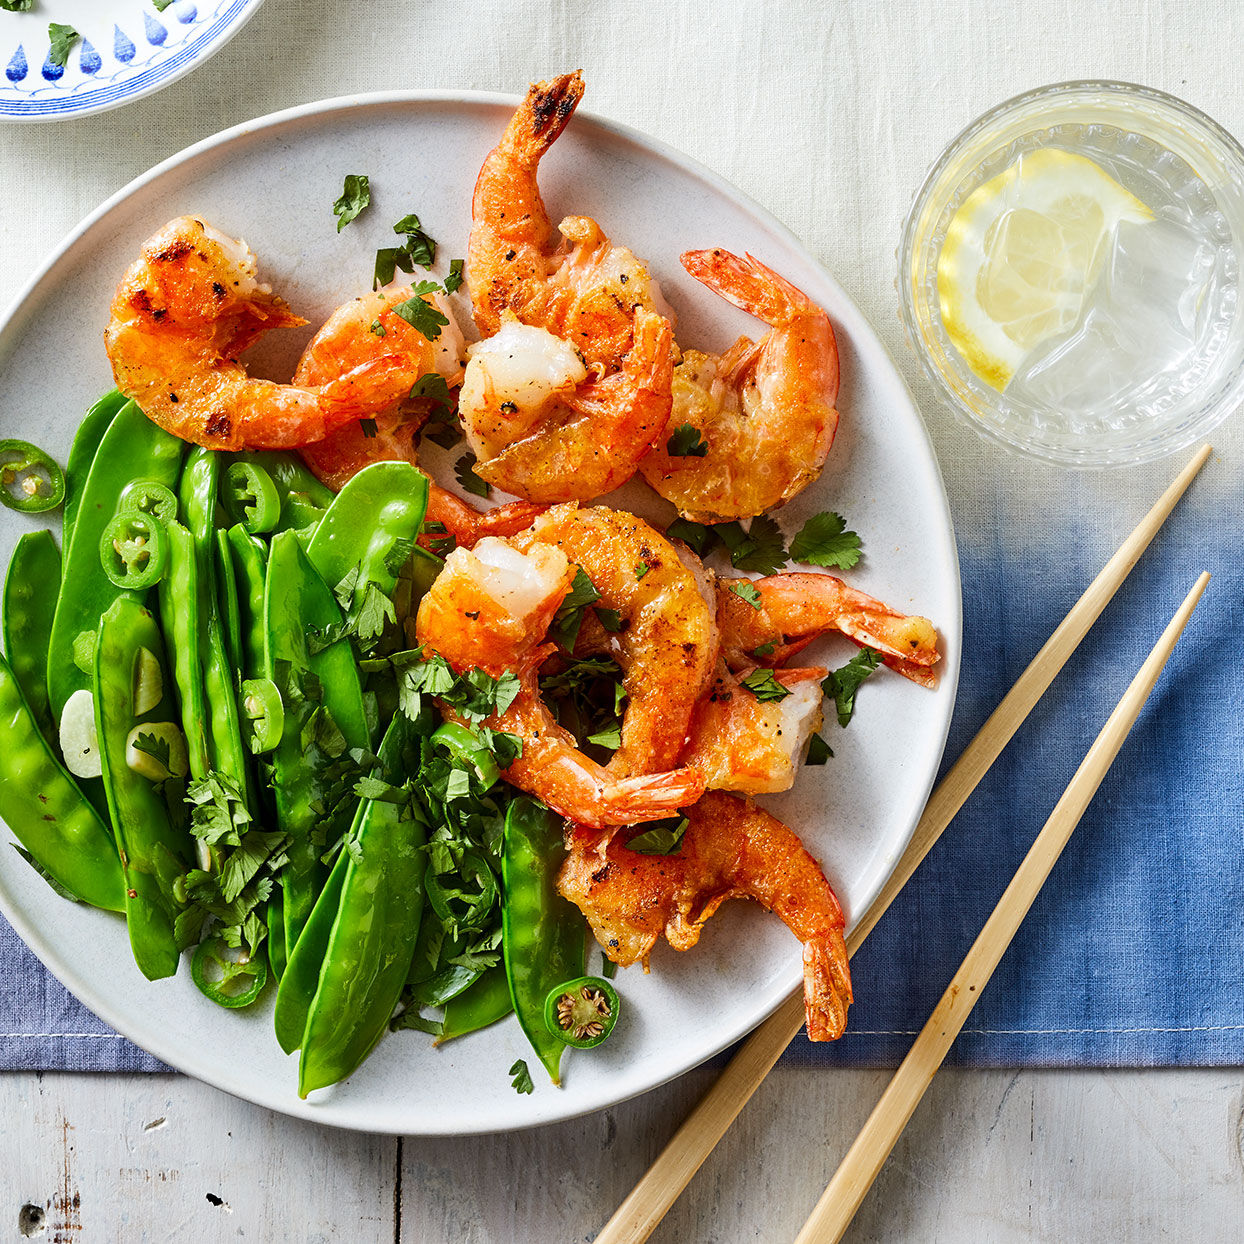 In China, salt and pepper shrimp is traditionally made with tongue-numbing Sichuan peppercorns. If you have some in the pantry, feel free to use them here; we opted for a combo of easier-to-find white and black pepper. The white pepper adds earthy flavor, while black kicks up the heat. Source: EatingWell Magazine, June 2020